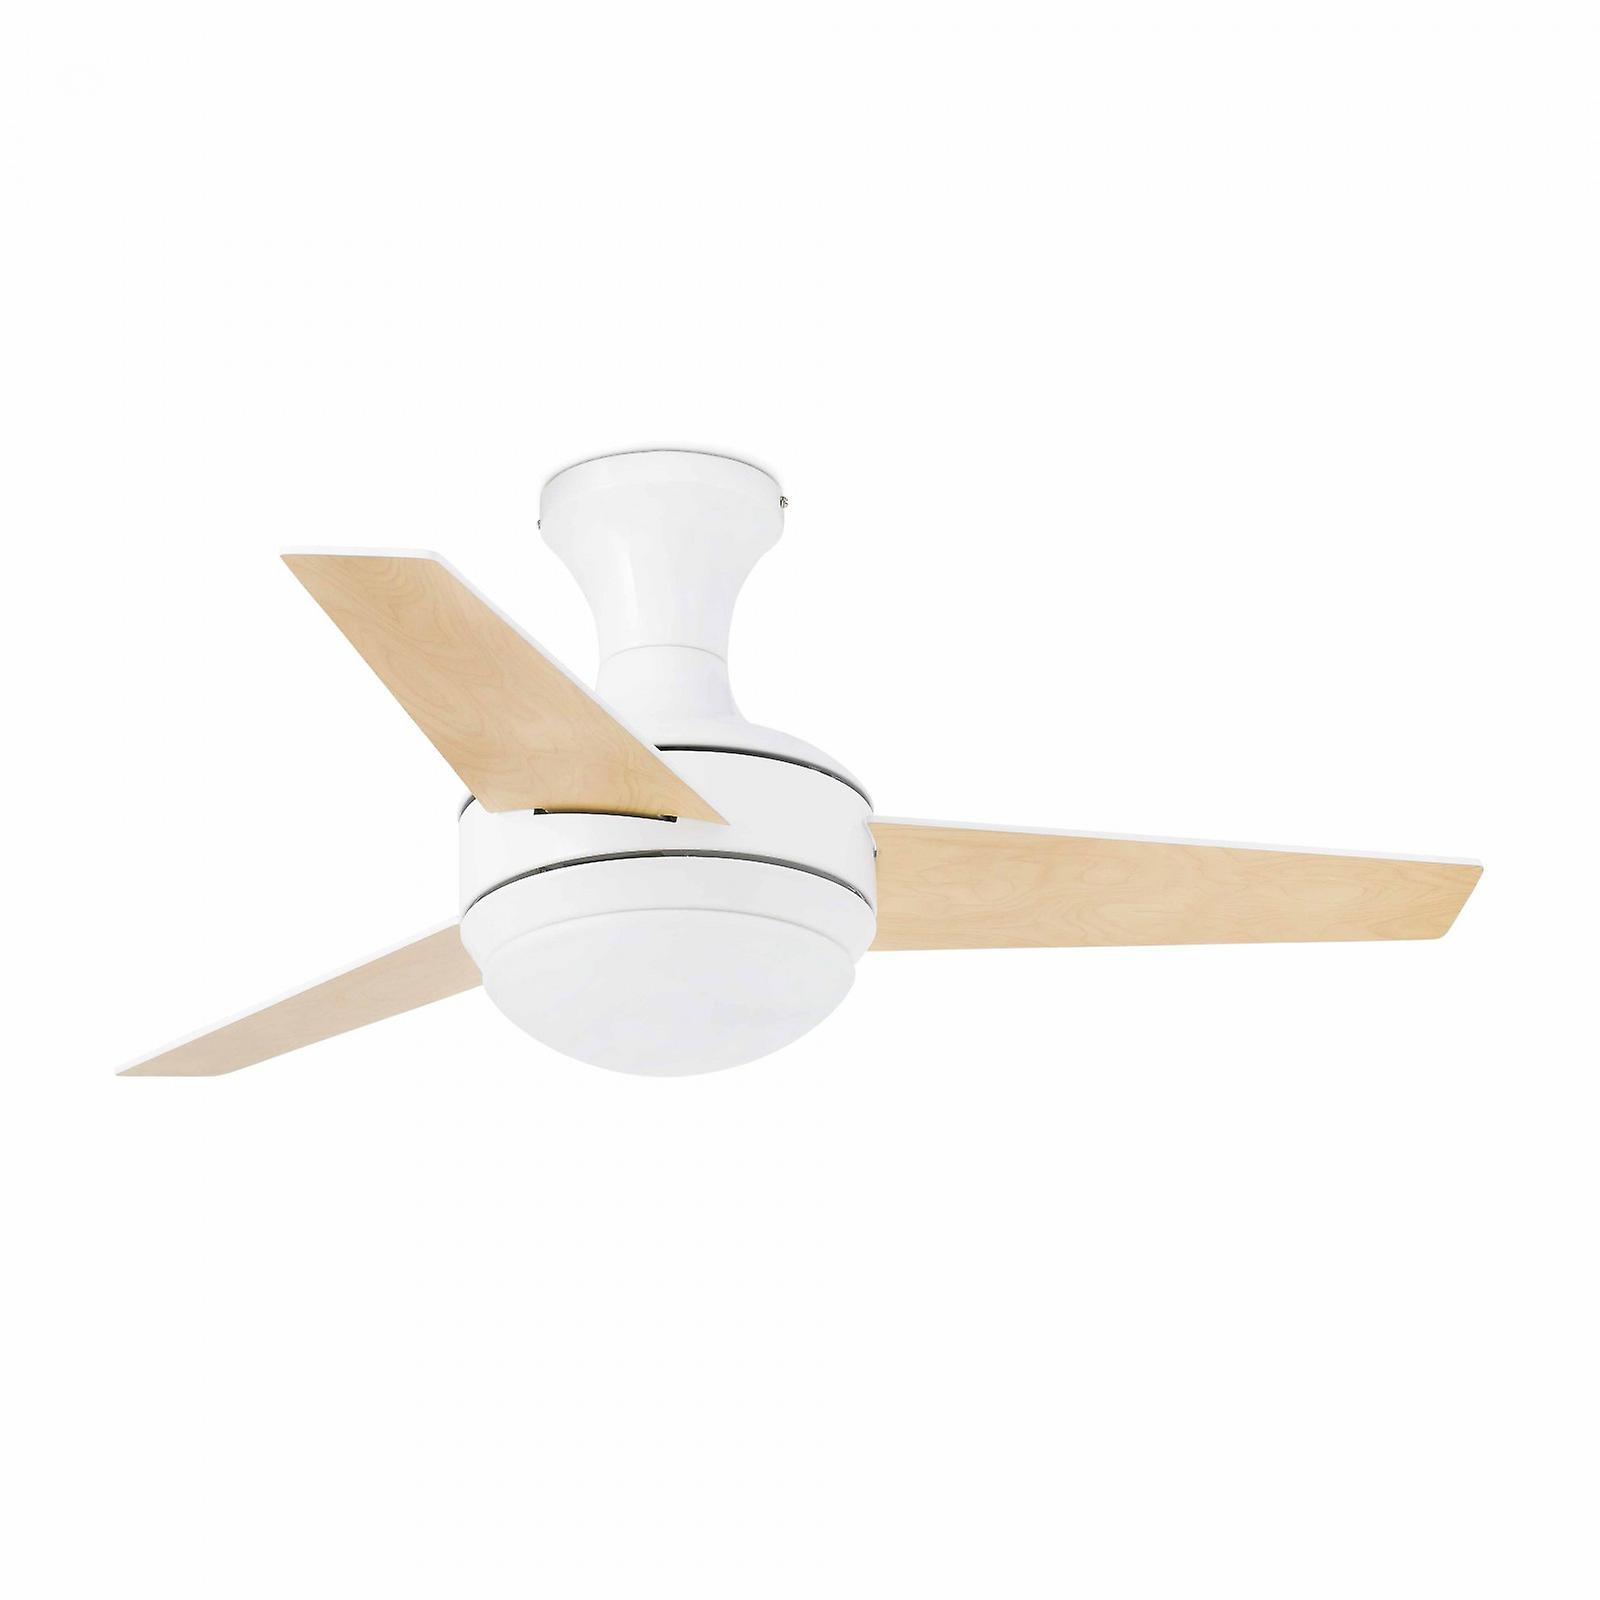 Ceiling fan MINI UFO White with Light and Remote